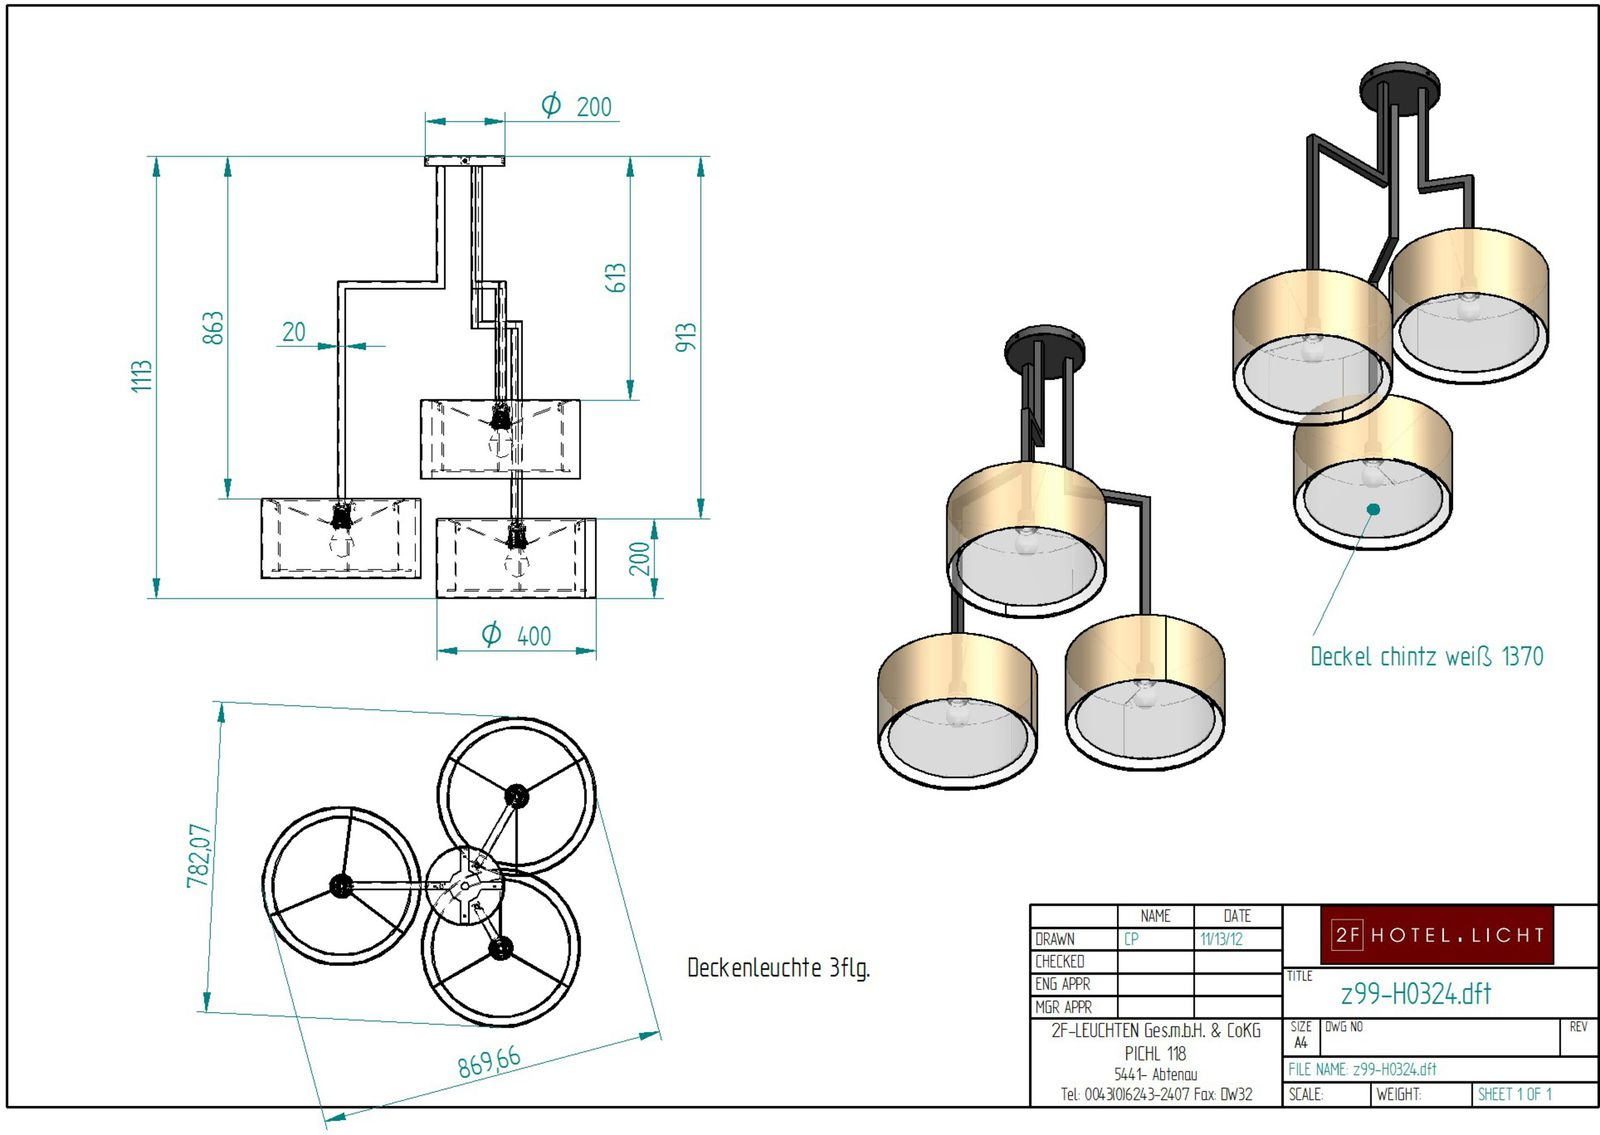 Pendant lamp, lenght=diameter 900mm, height=1113mm, surface: ABR antique brown, techn. details: 3xE27, 52W, 230V